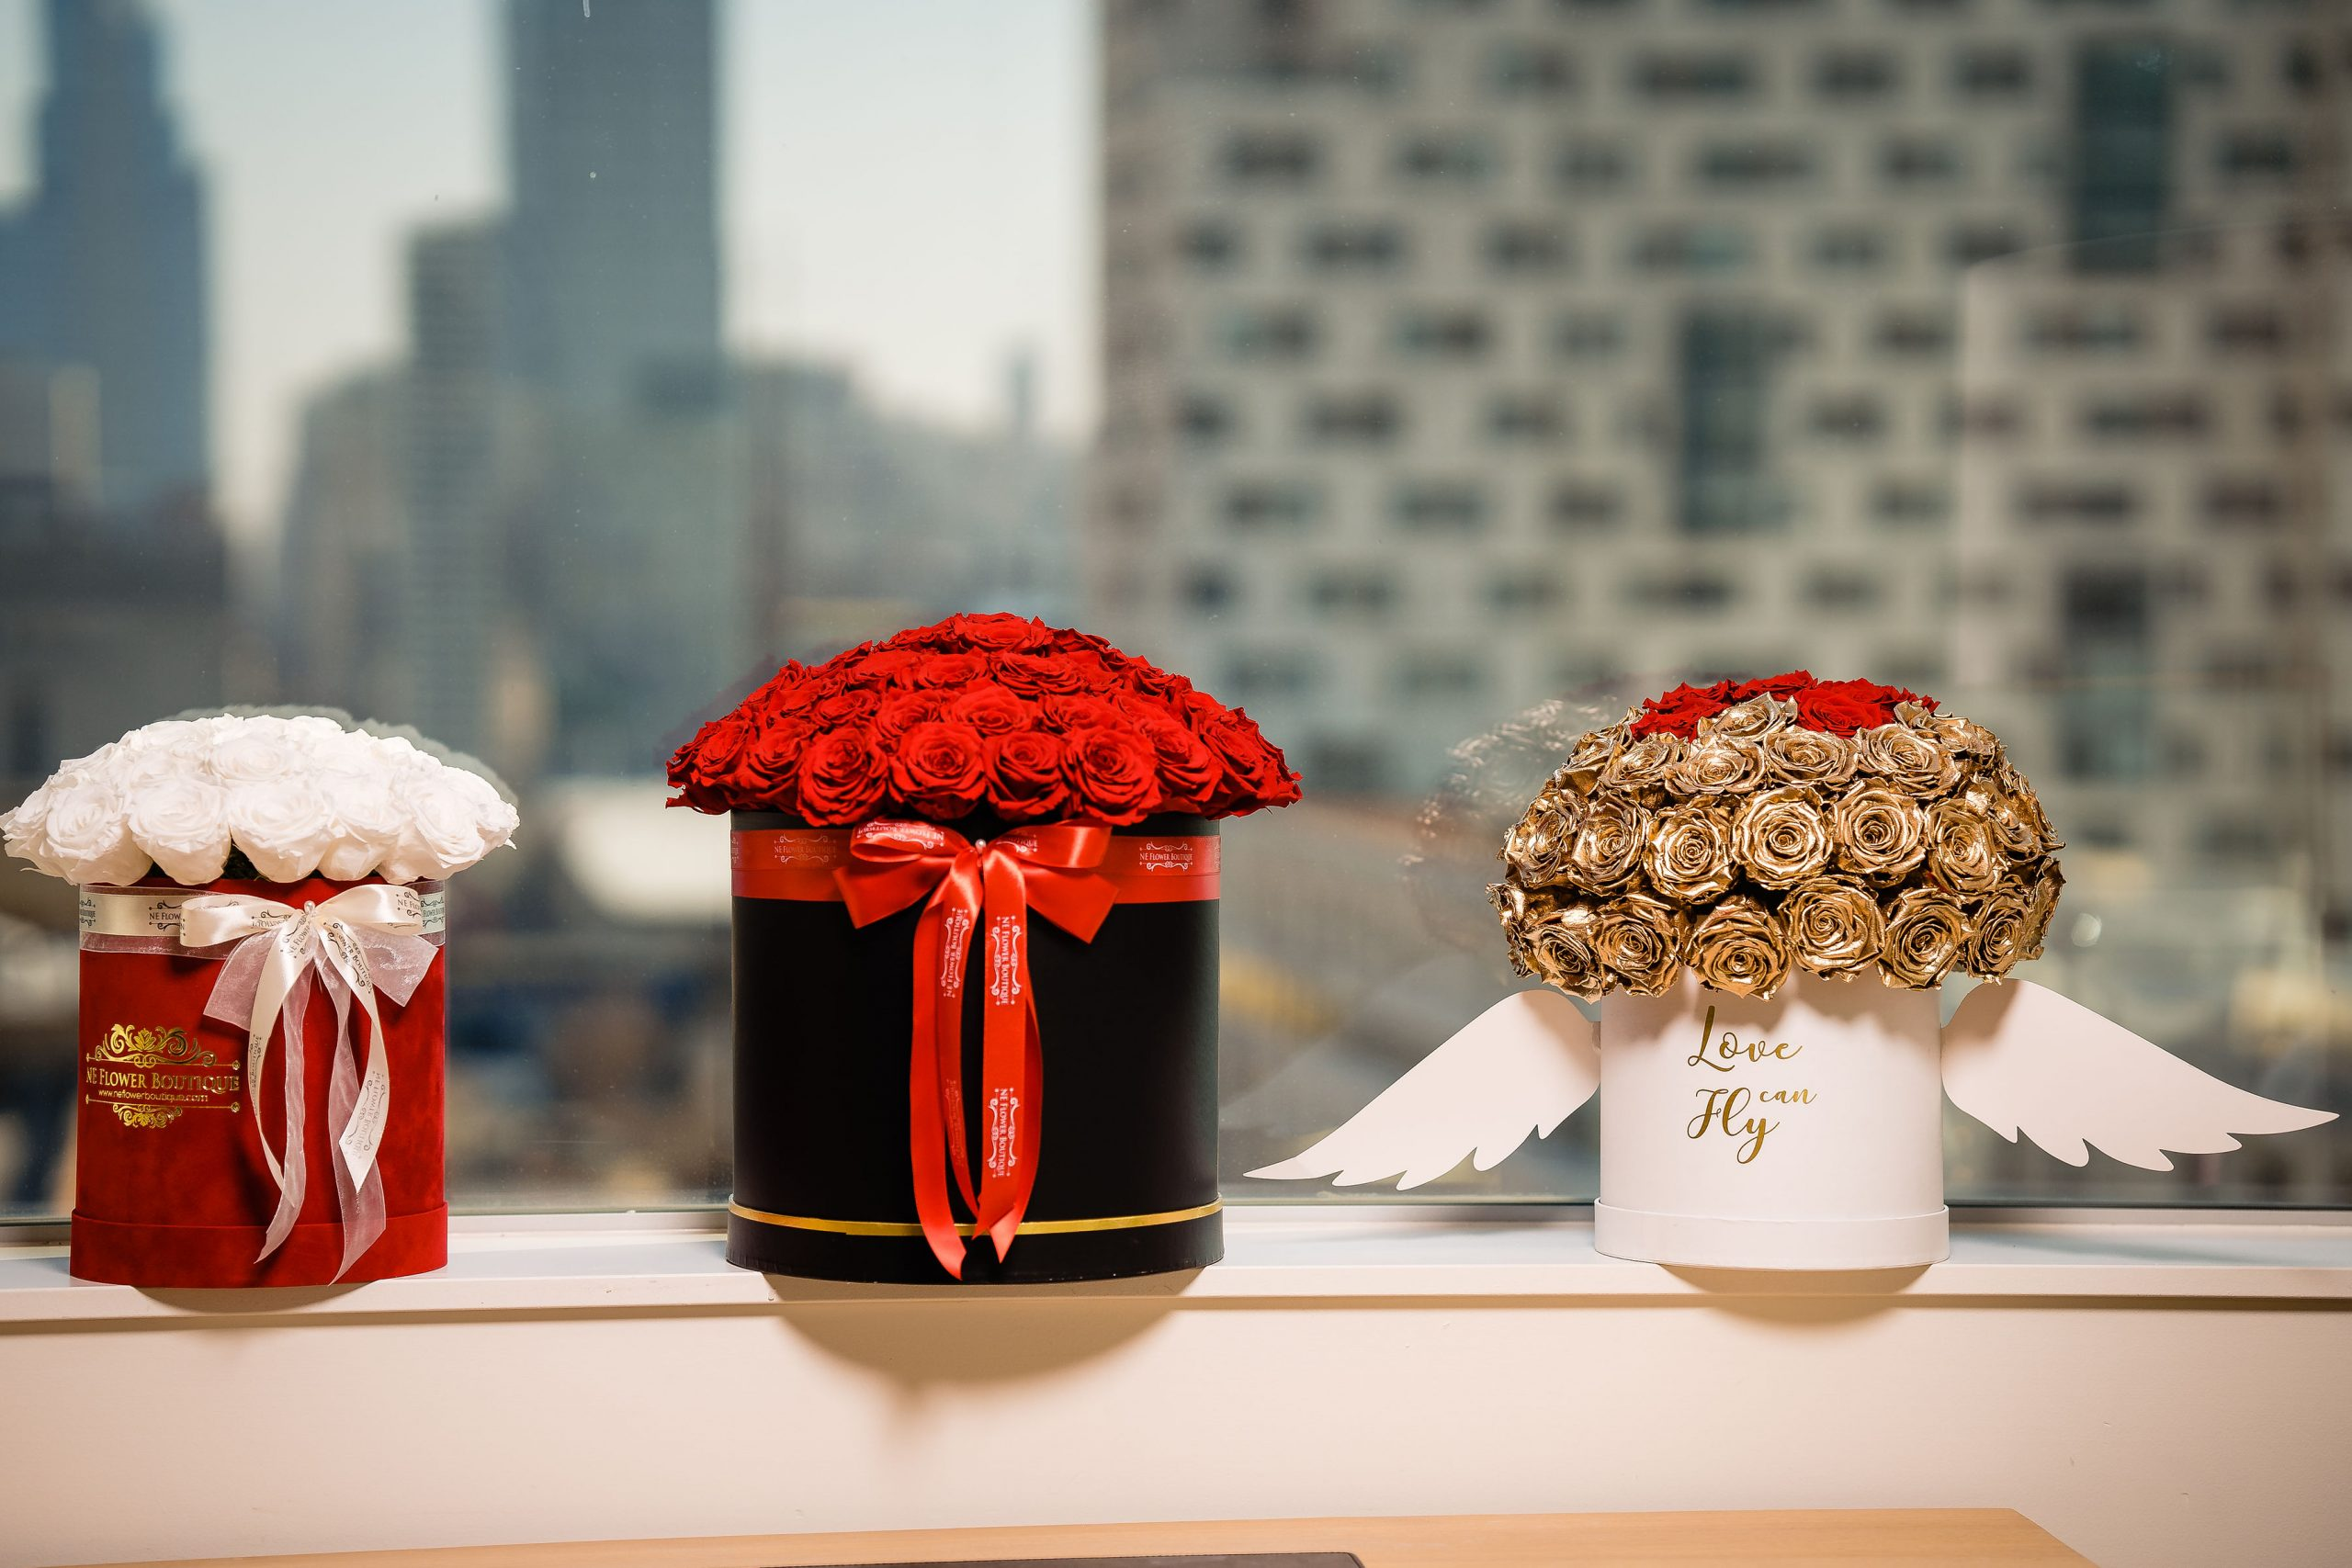 Red roses in the window sill